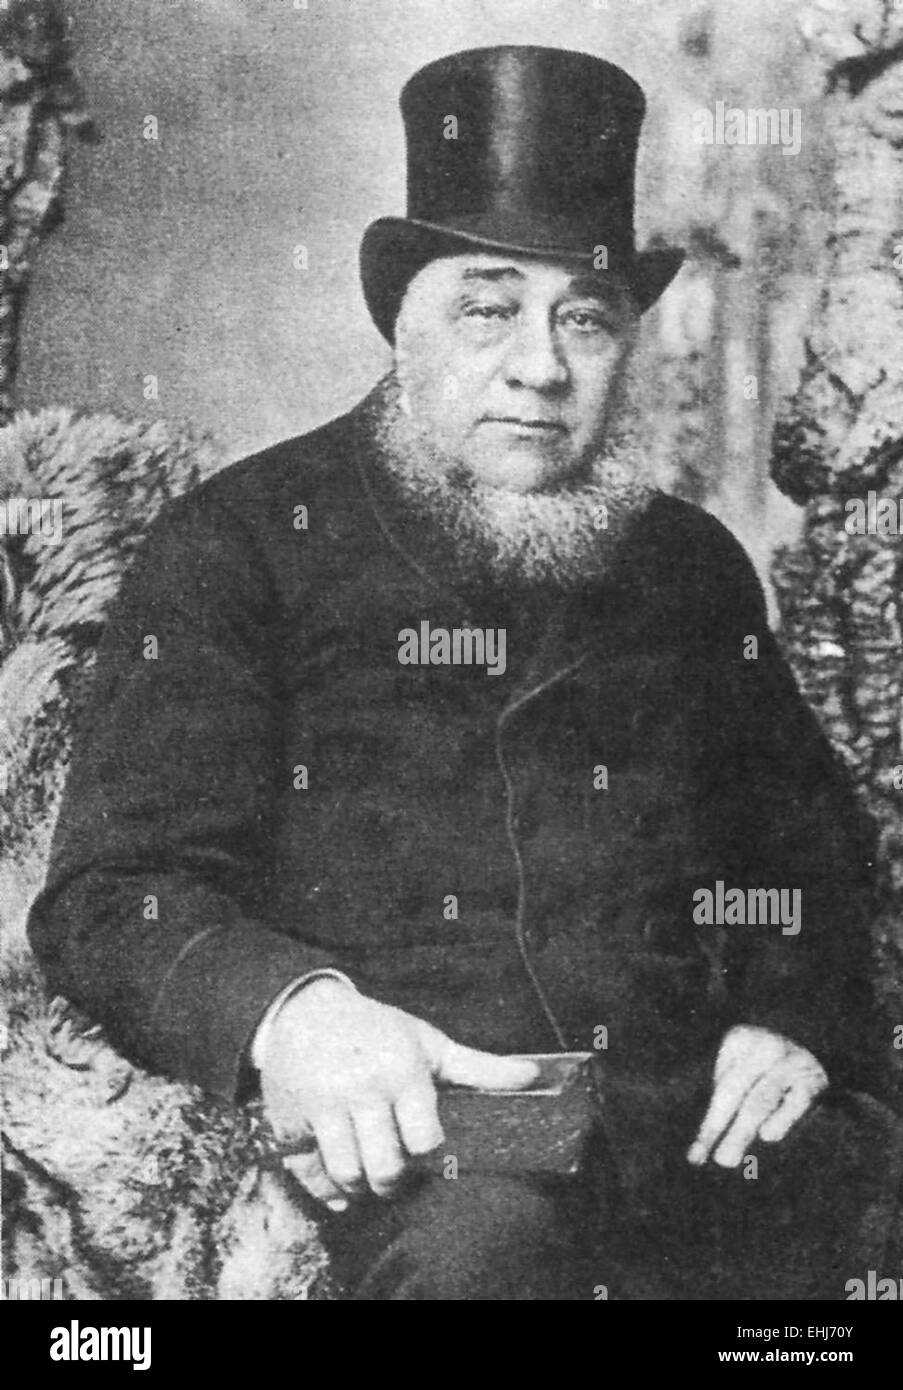 Paul Kruger, Boer leader and President of the South African or Transvaal Republic from 1883 to 1900. - Stock Image